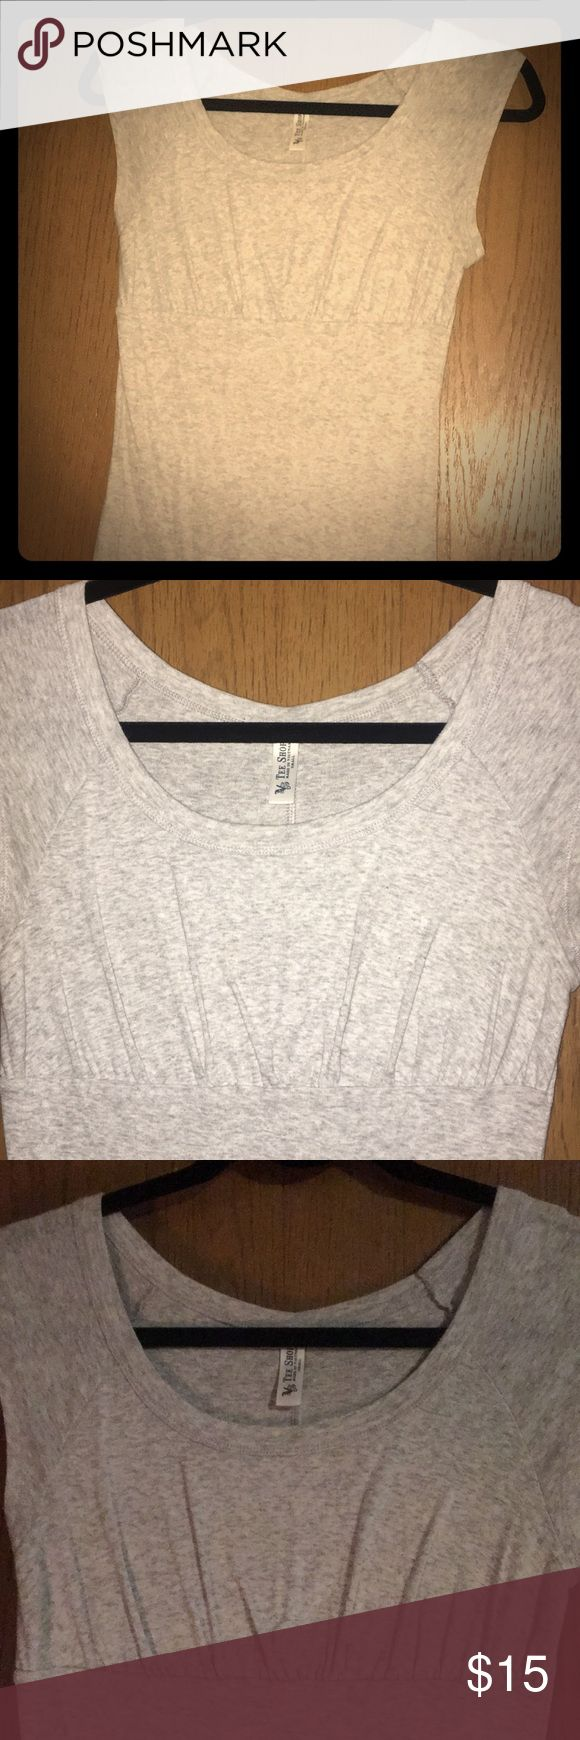 Victoria's Secret catalog Sexy T-shirt! Grey, light, babydoll T. Gathers under bust to accentuate! Capped sleeves. Size small. Lots of life left!! Tee Shop Tops Tees - Short Sleeve